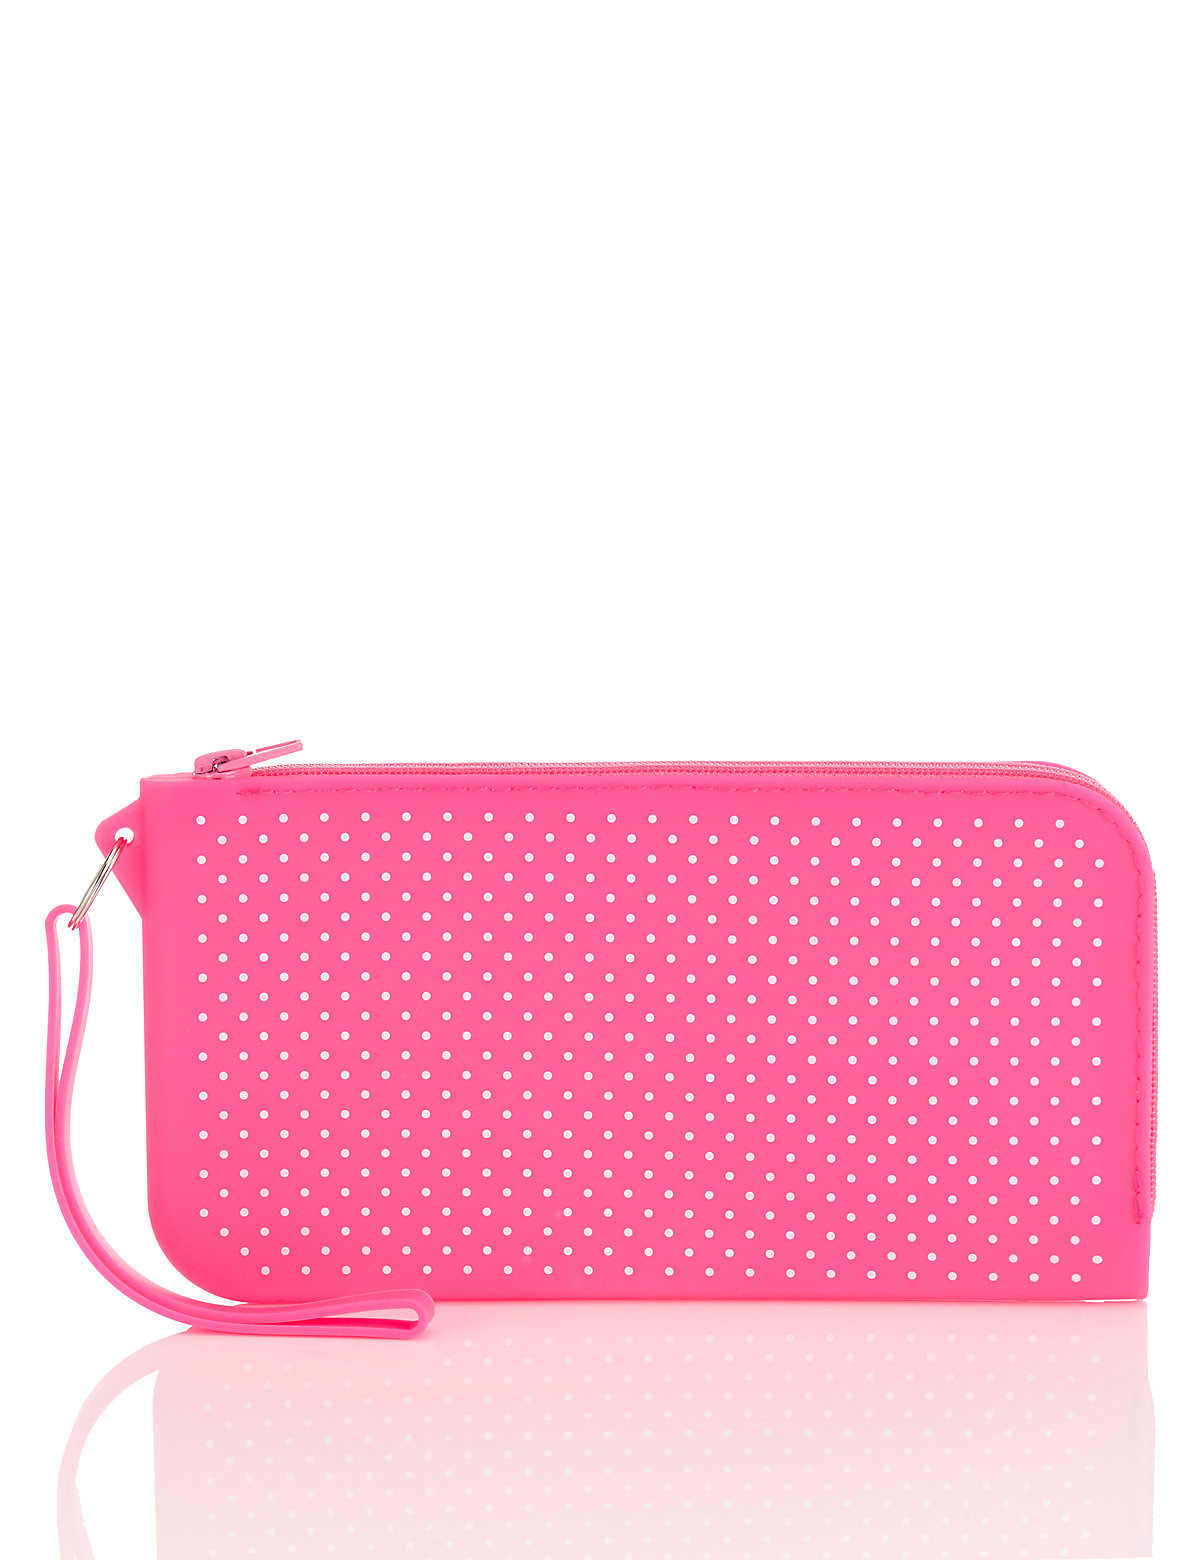 Pink Silicon Pencil Case